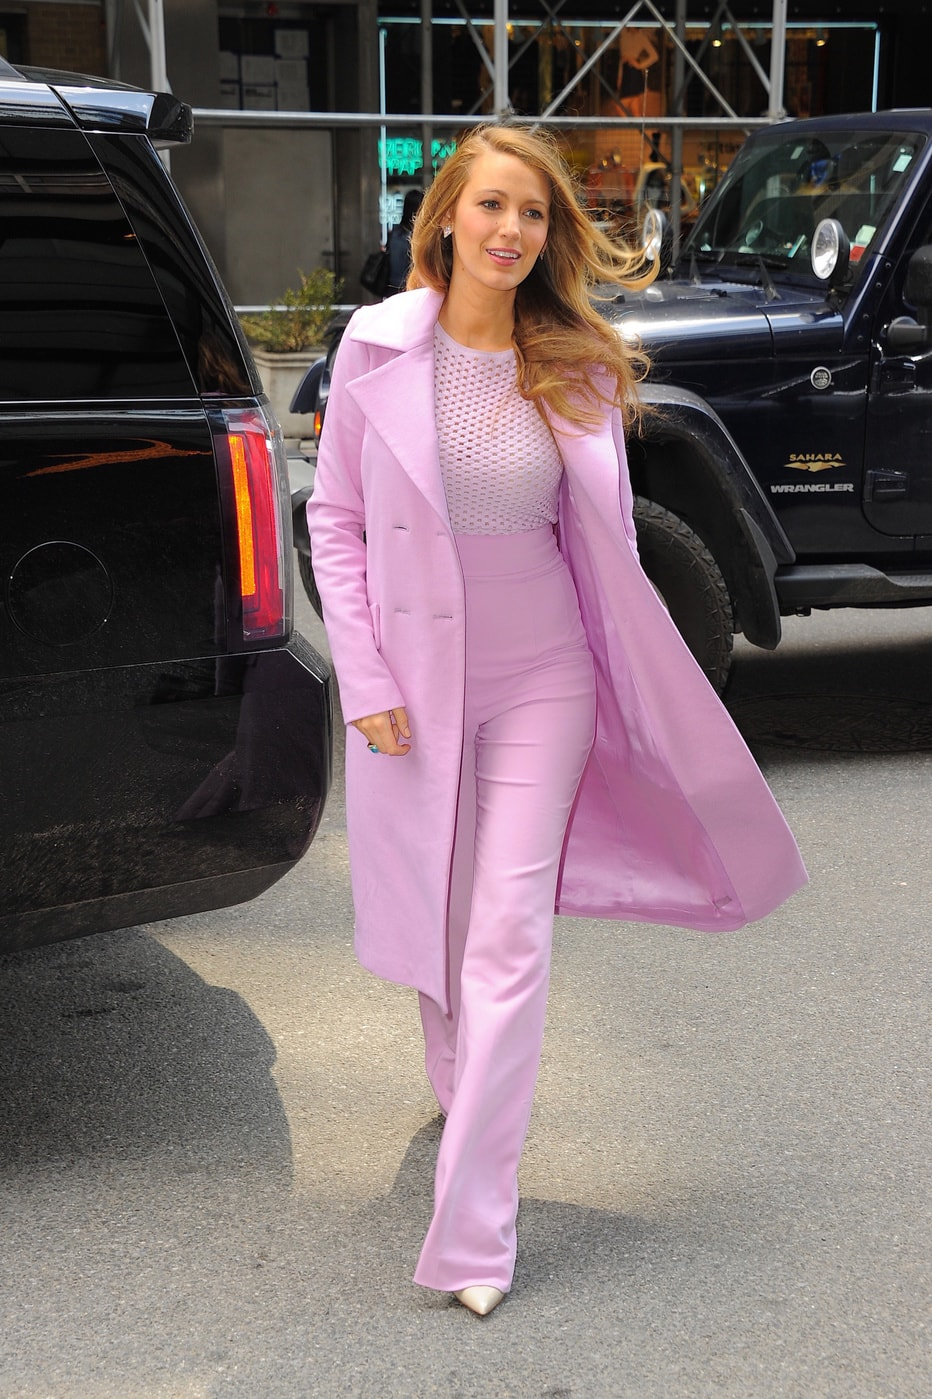 Blake Lively in bold pink attire.